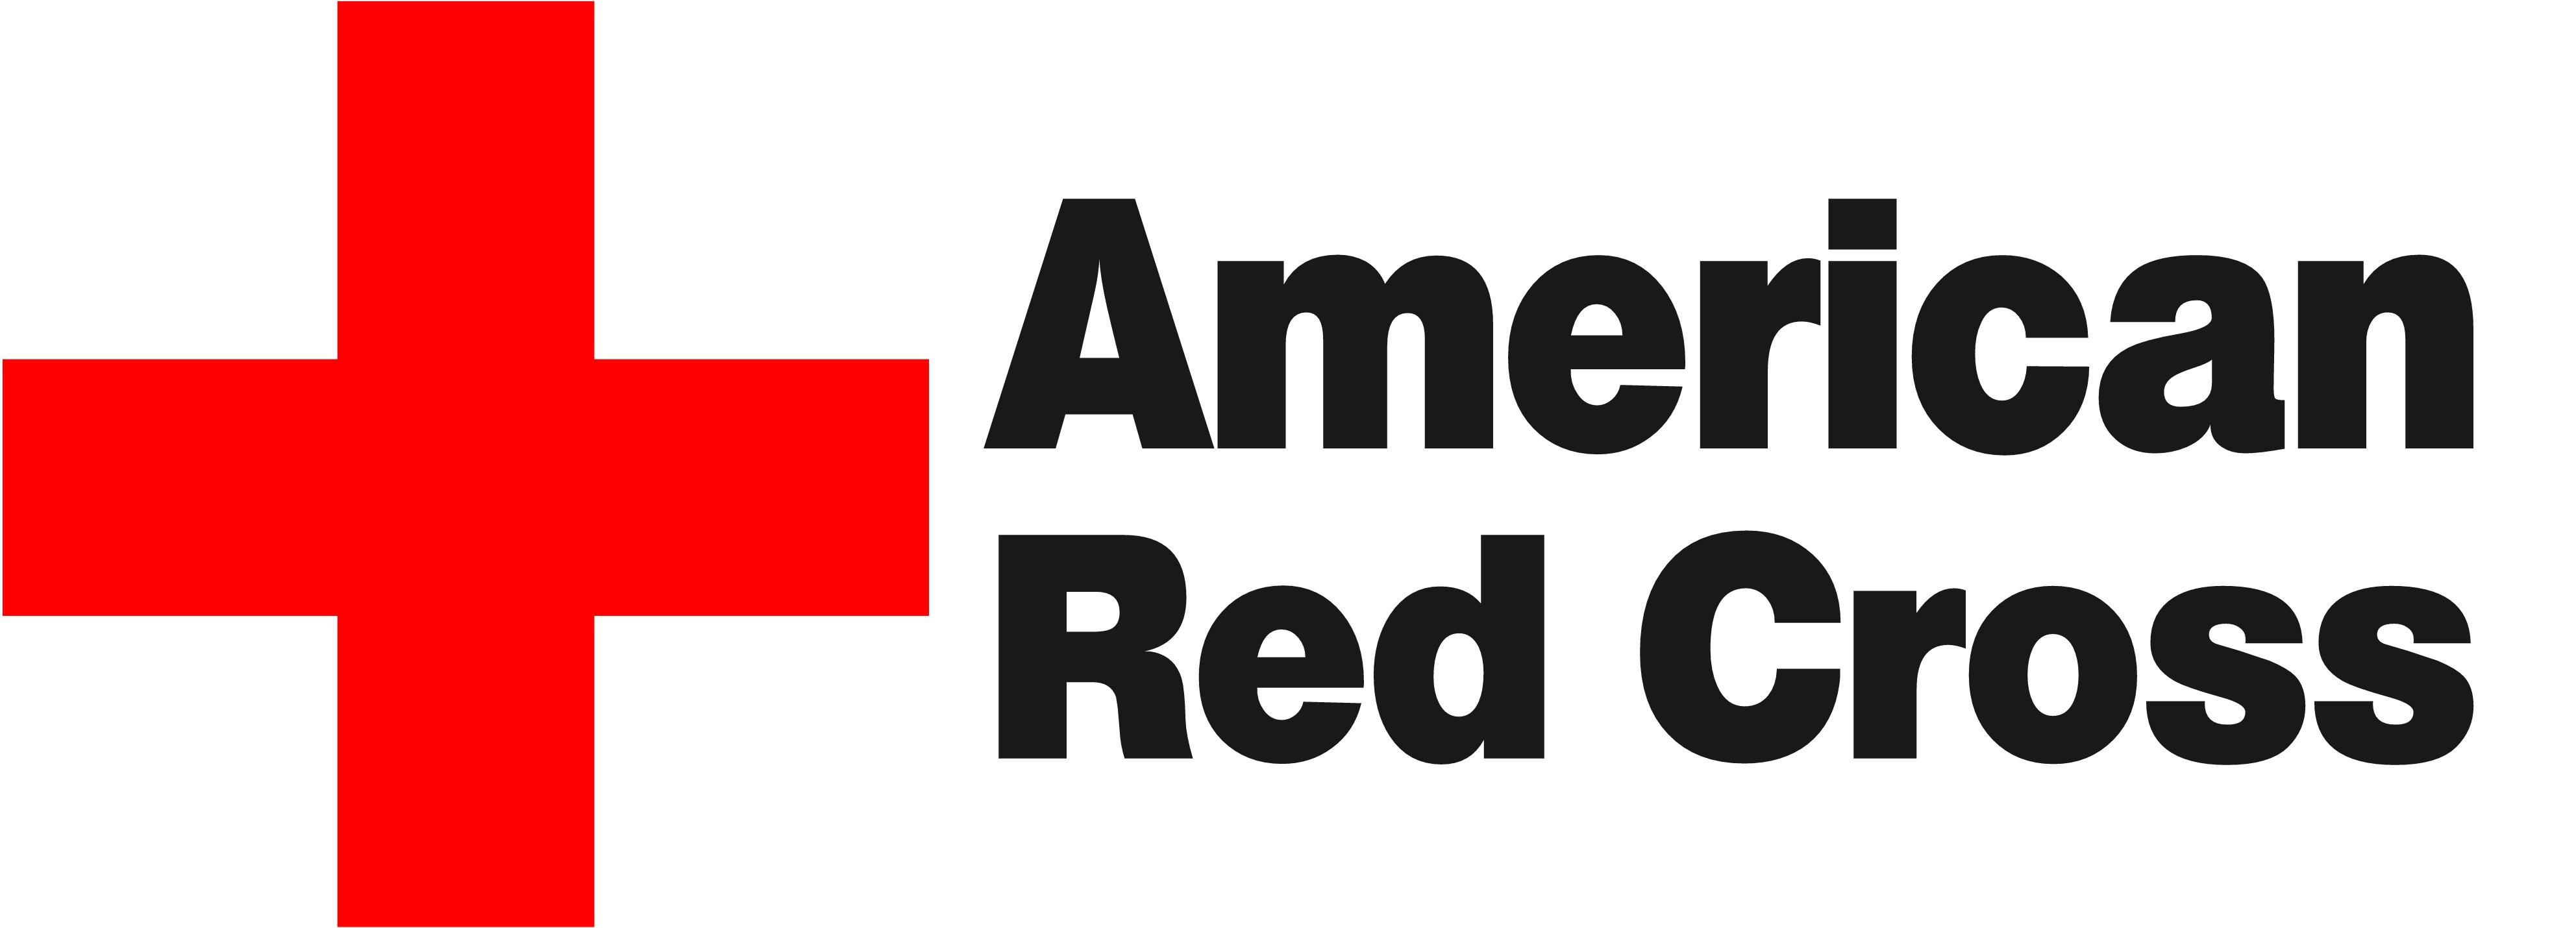 American Red Cross 's Logo